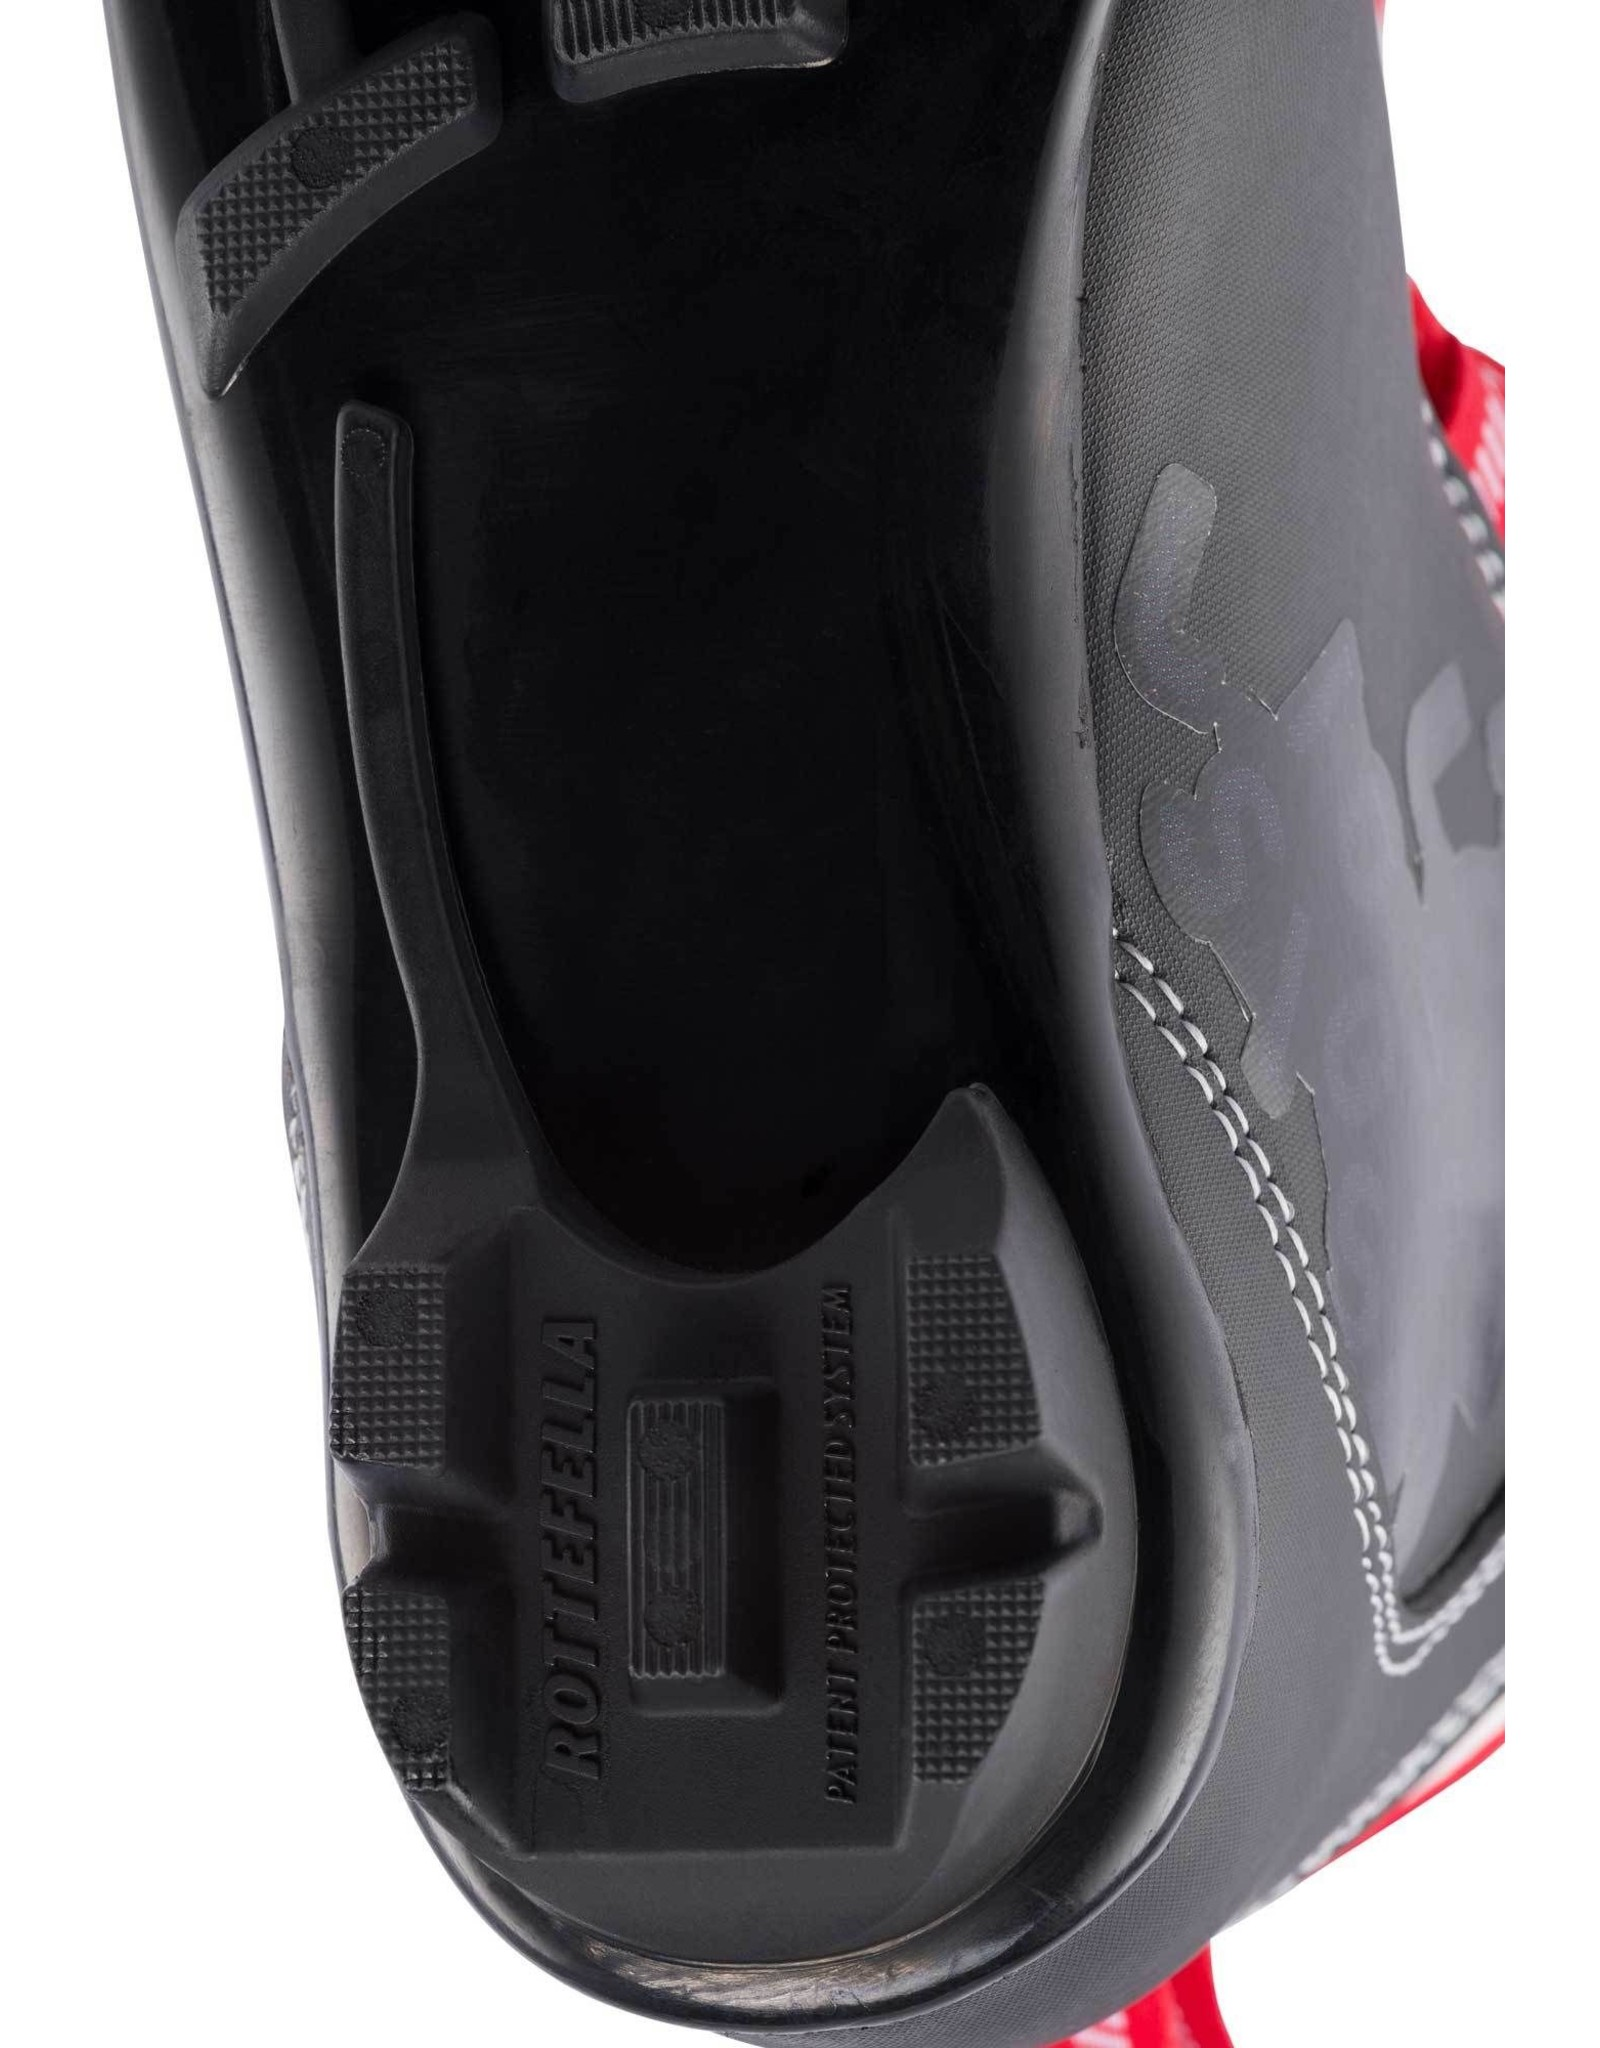 ROSSIGNOL Botte de skis de fond ROSSIGNOL- X-1 JR junior